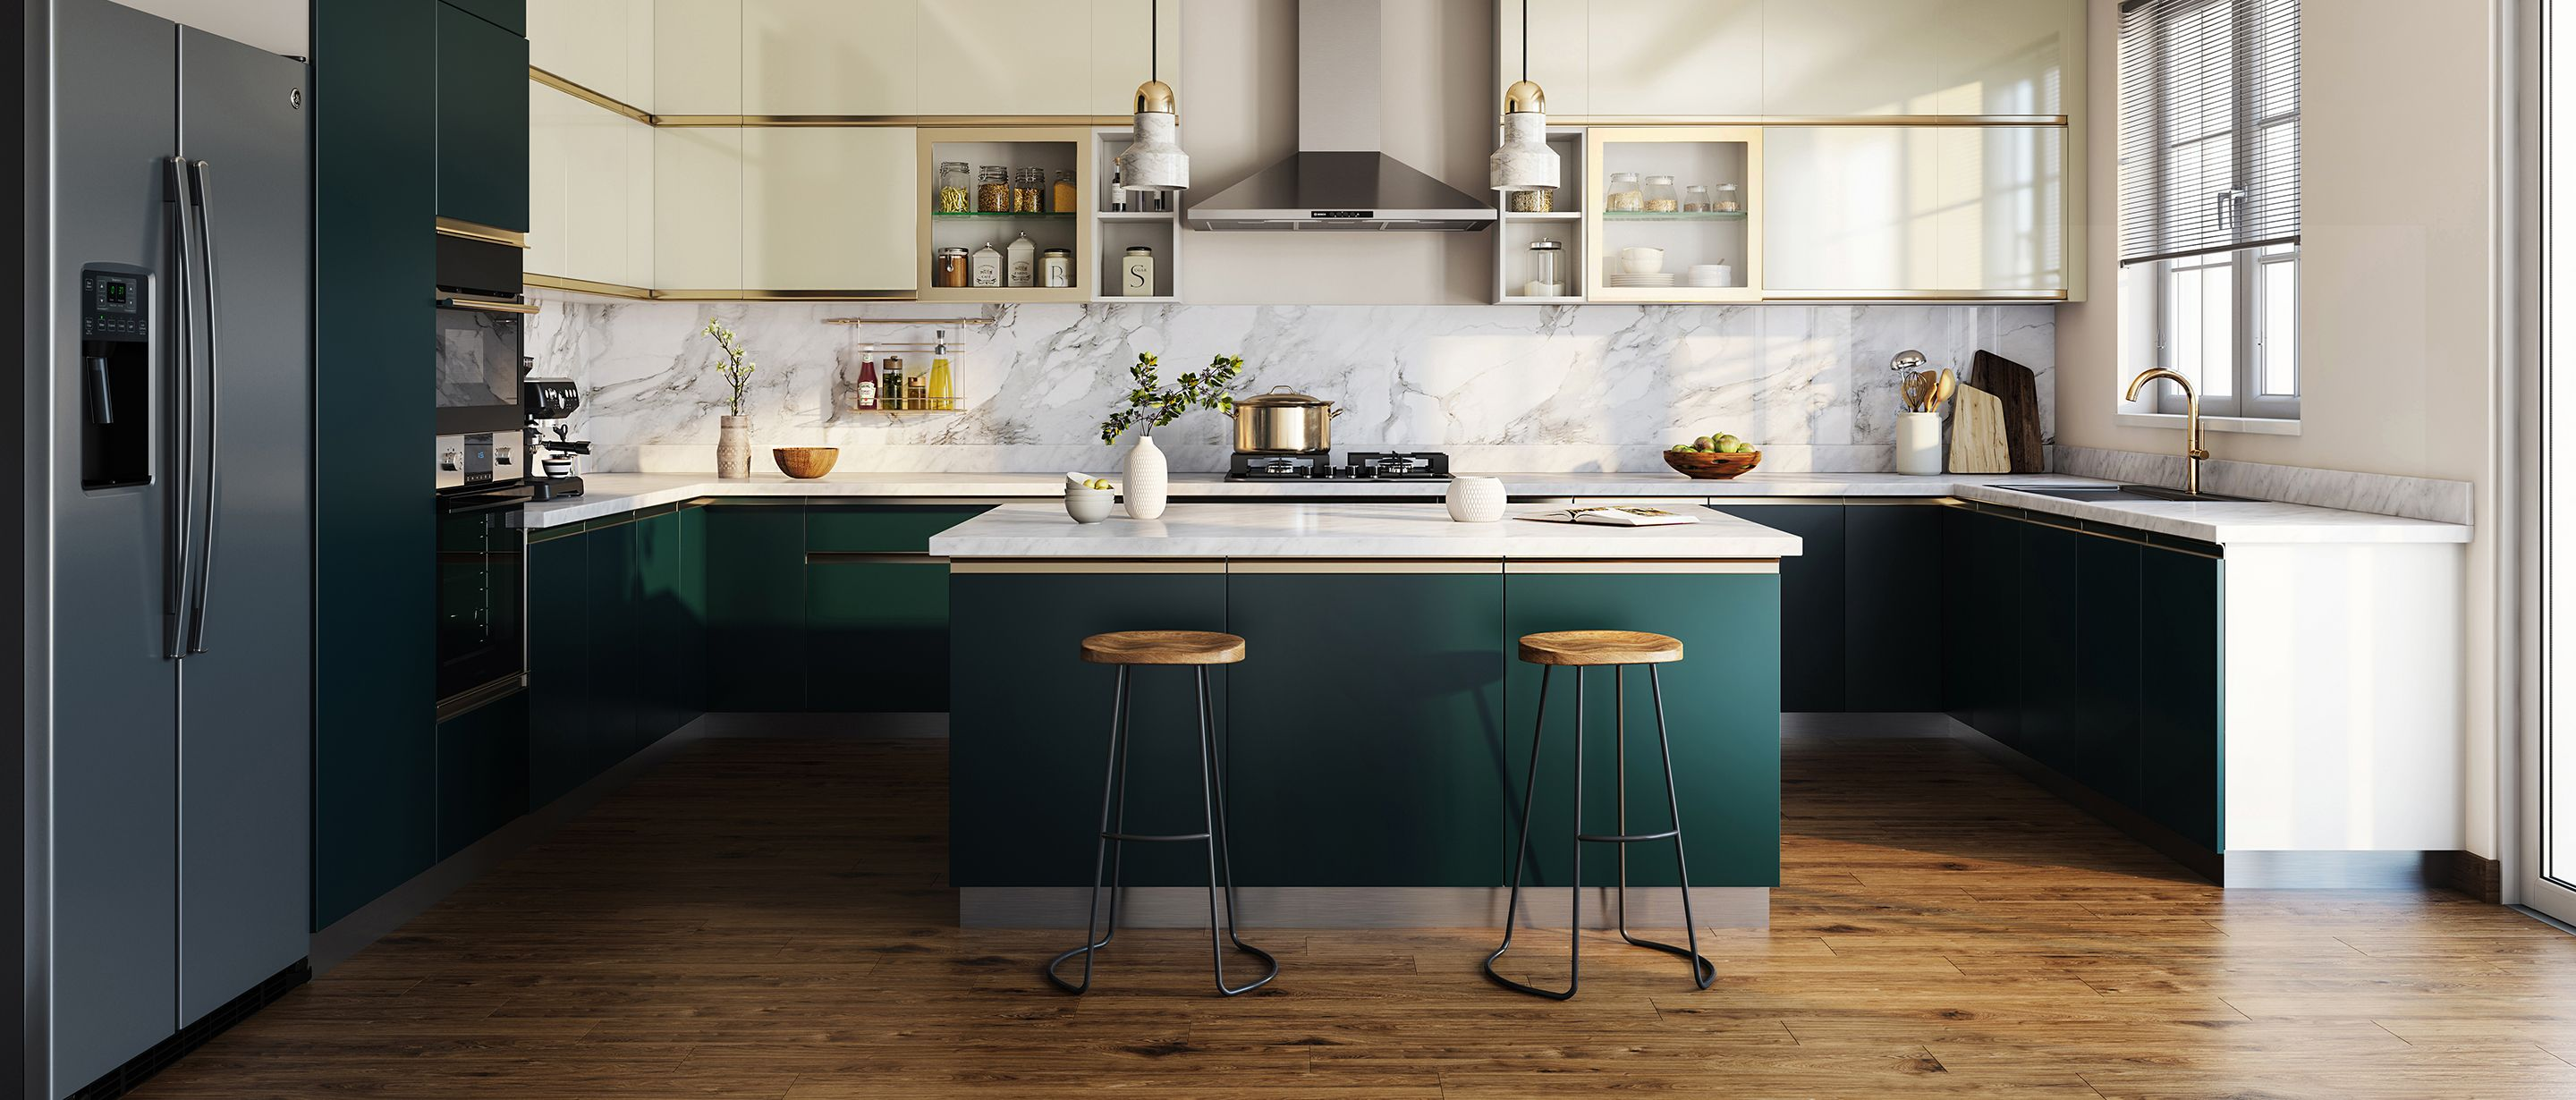 Discover your Livspace kitchen